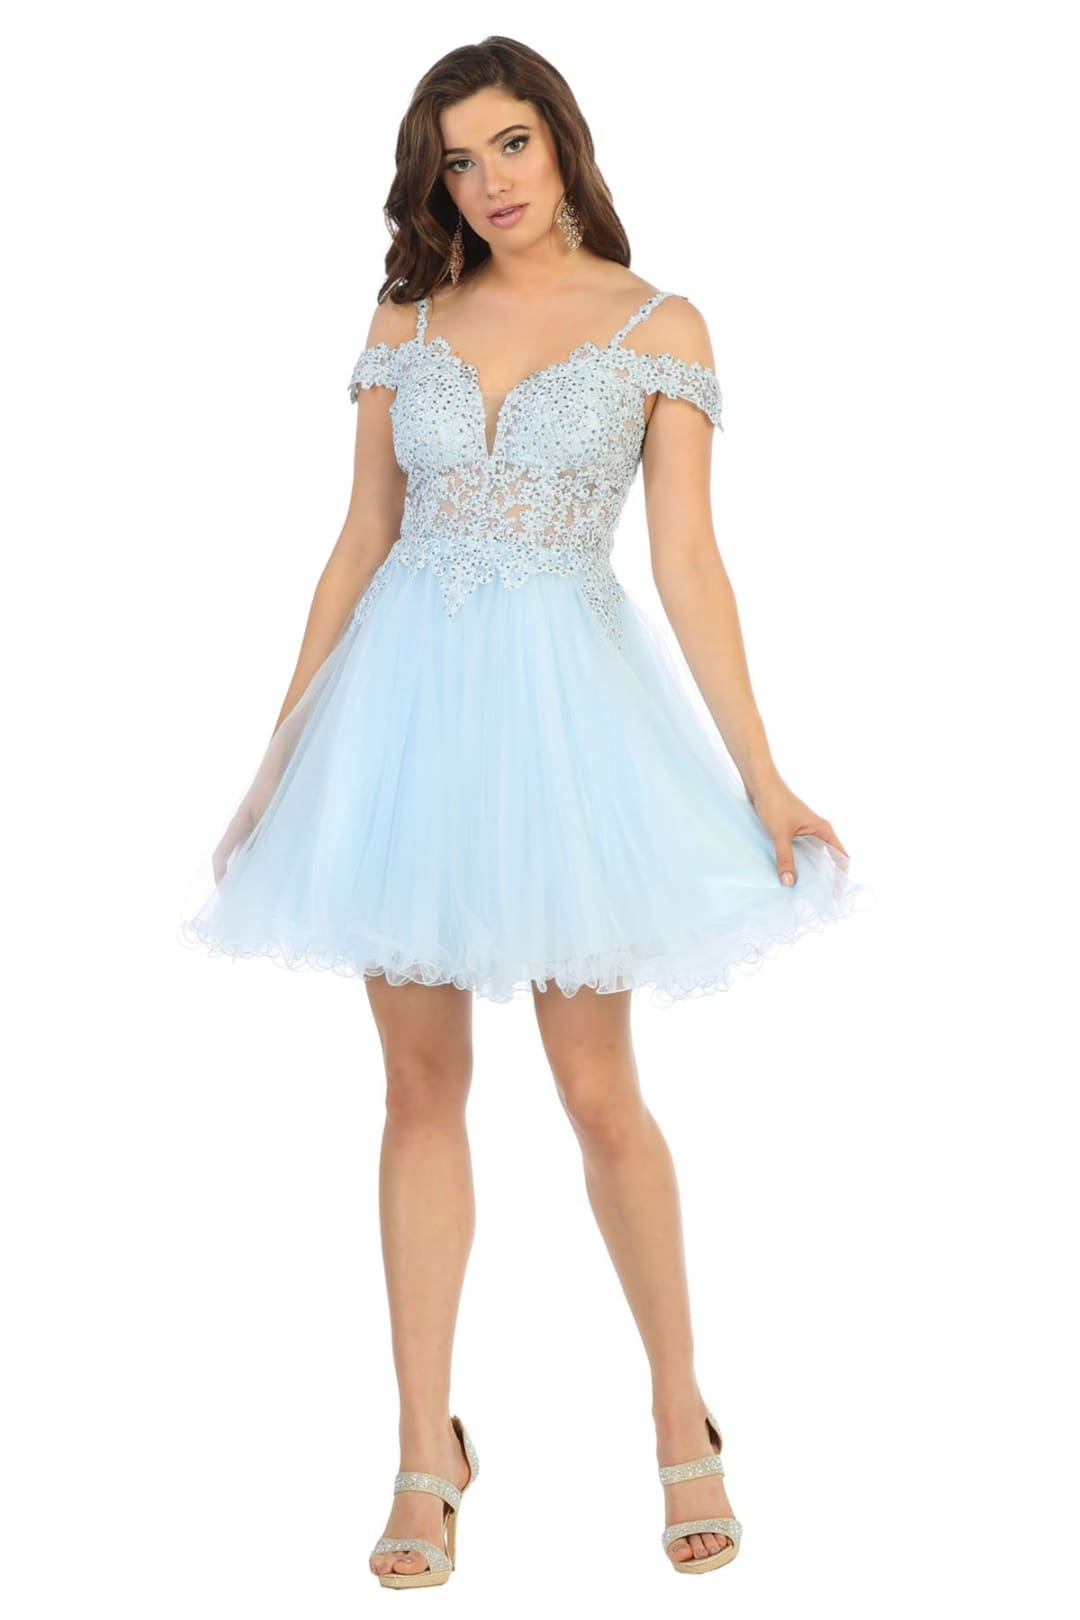 Short Evening Prom Dress - Baby Blue / 2